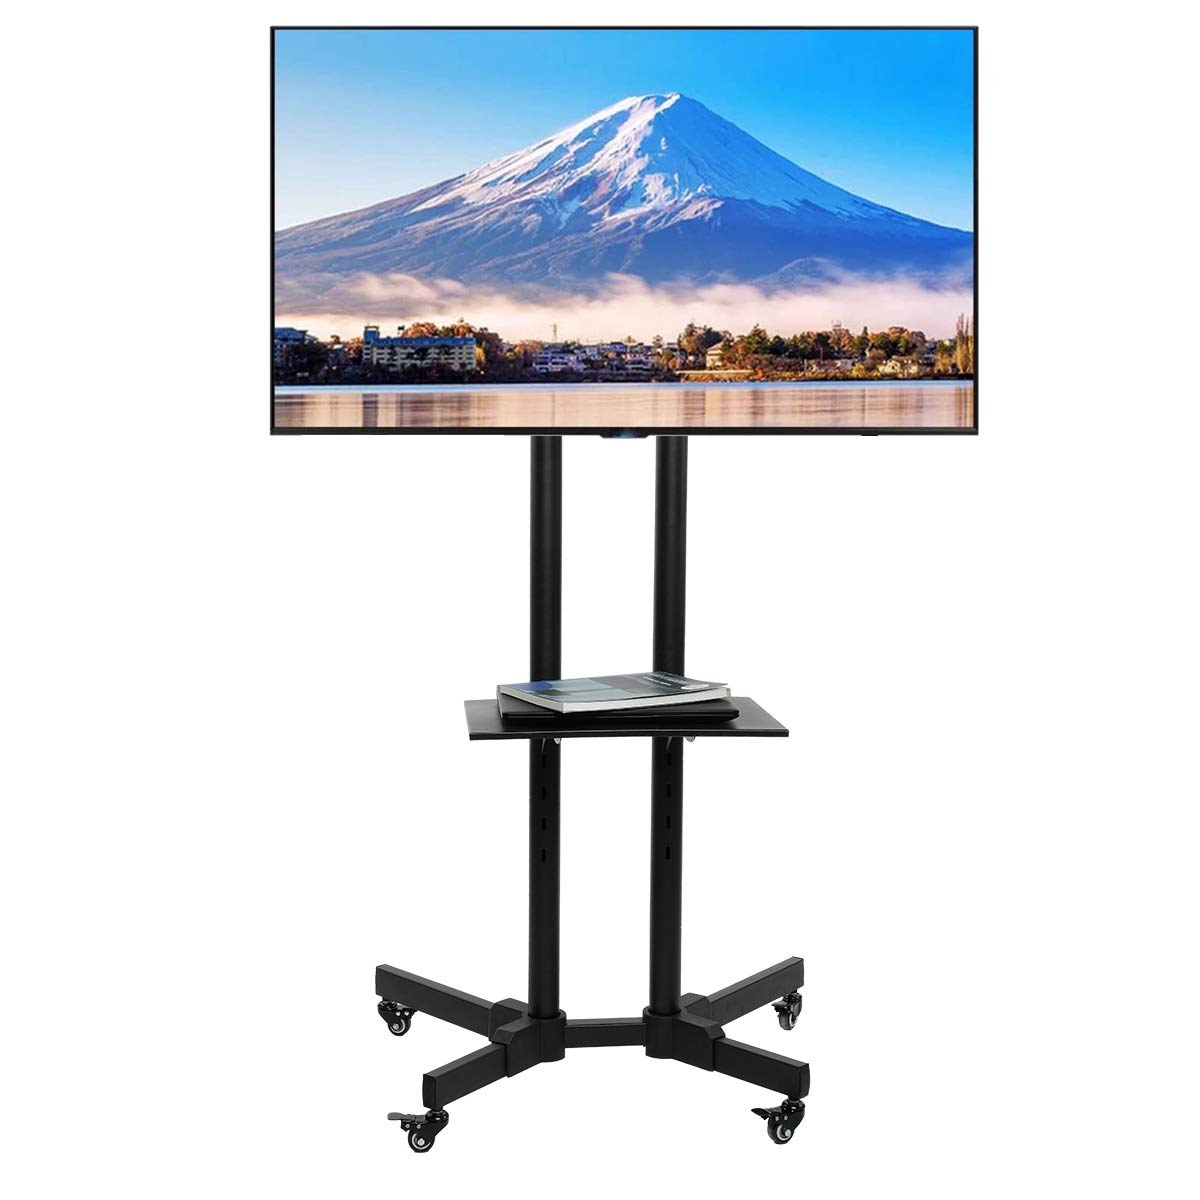 ORAF Rolling TV Cart Mobile TV Stand Height Adjustable with Locking Wheels for 32 to 65 inch LCD LED Plasma Flat Panel Screen by ORAF